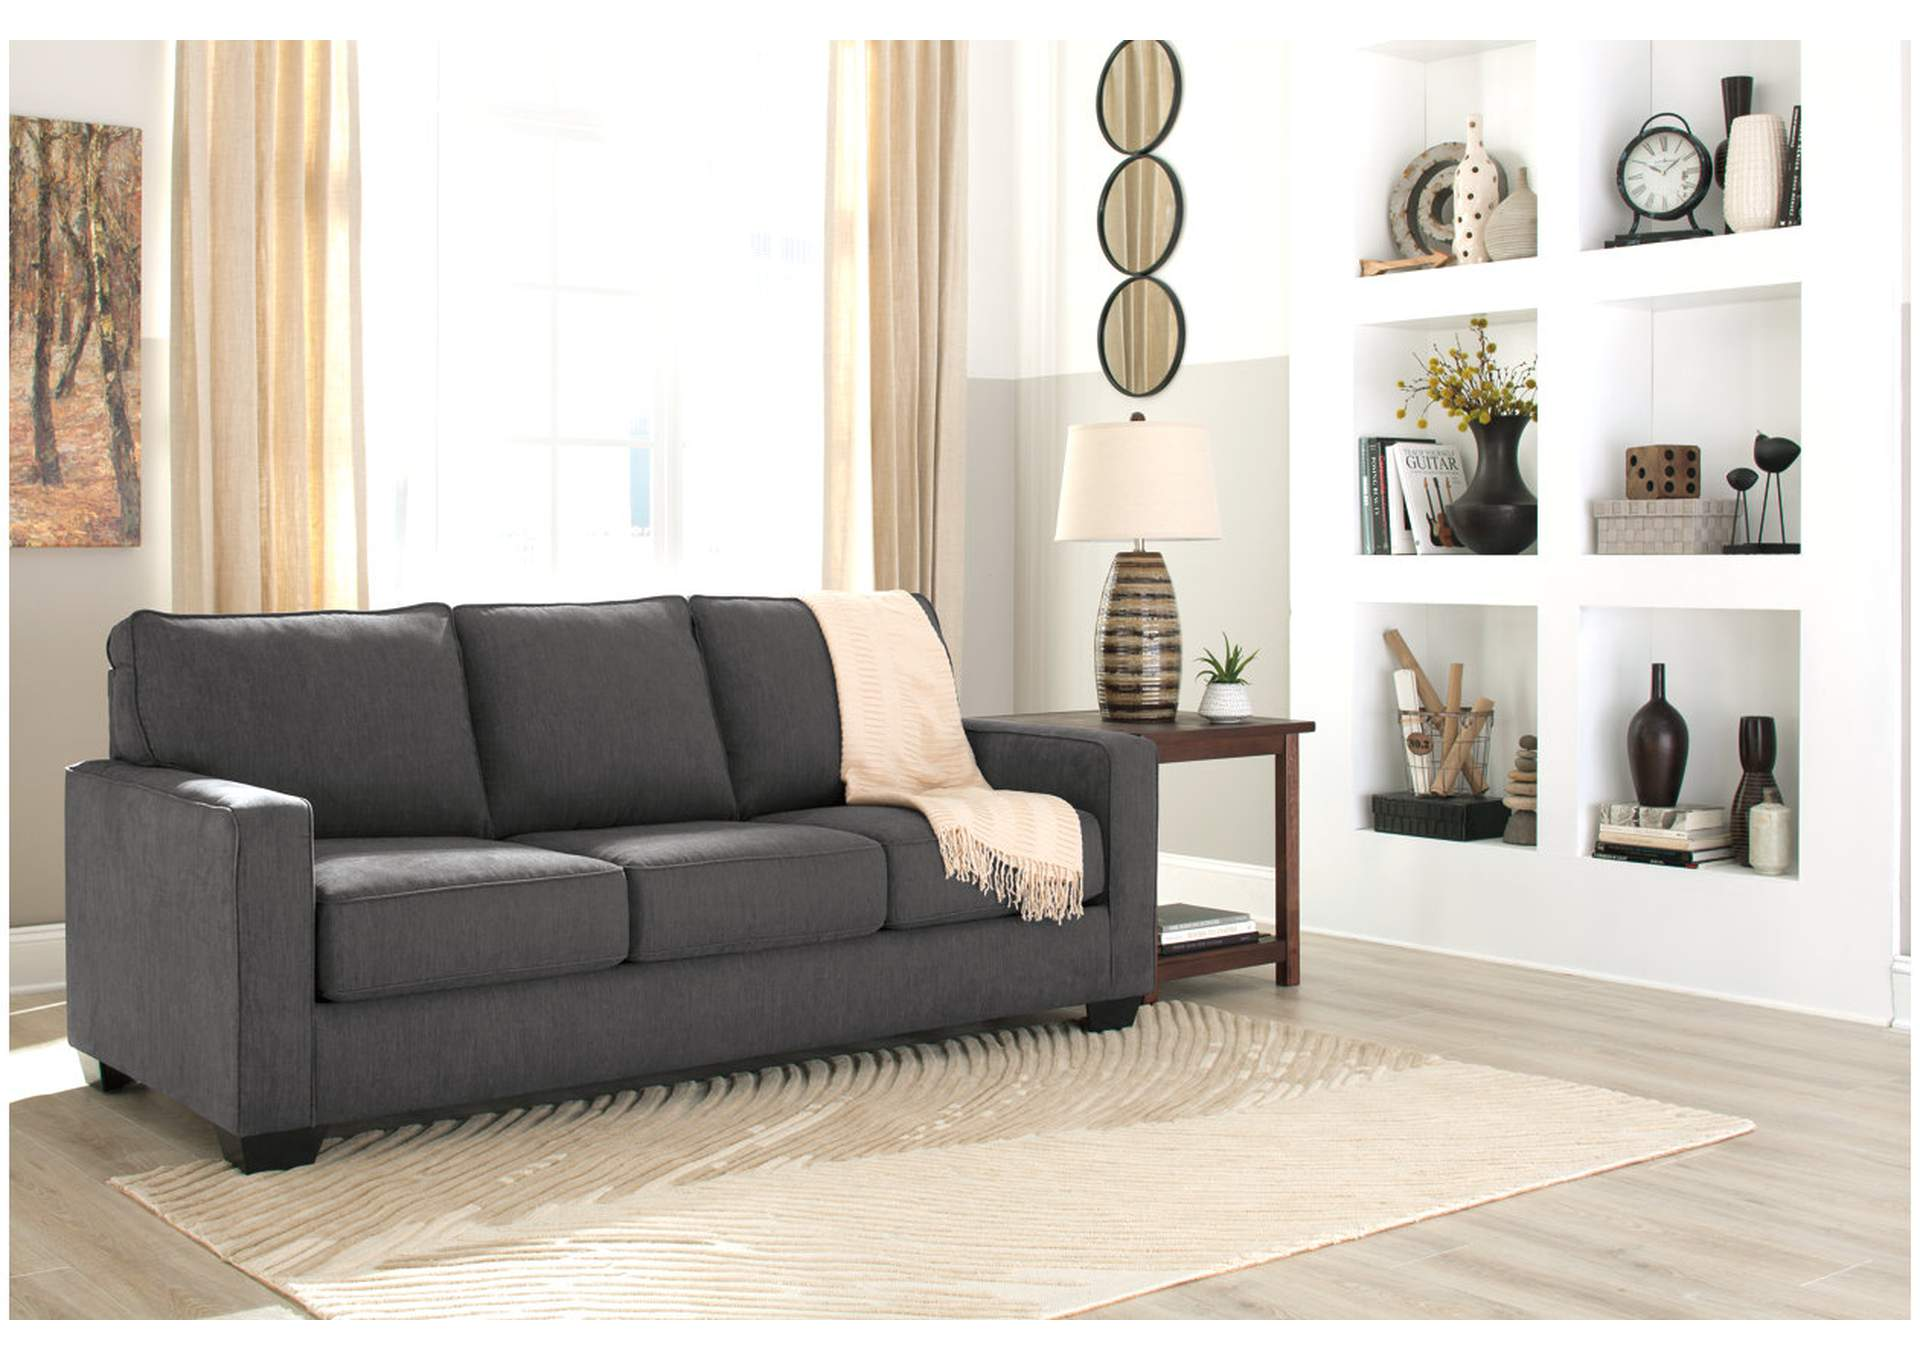 Zeb Charcoal Queen Sofa Sleeper,Signature Design By Ashley